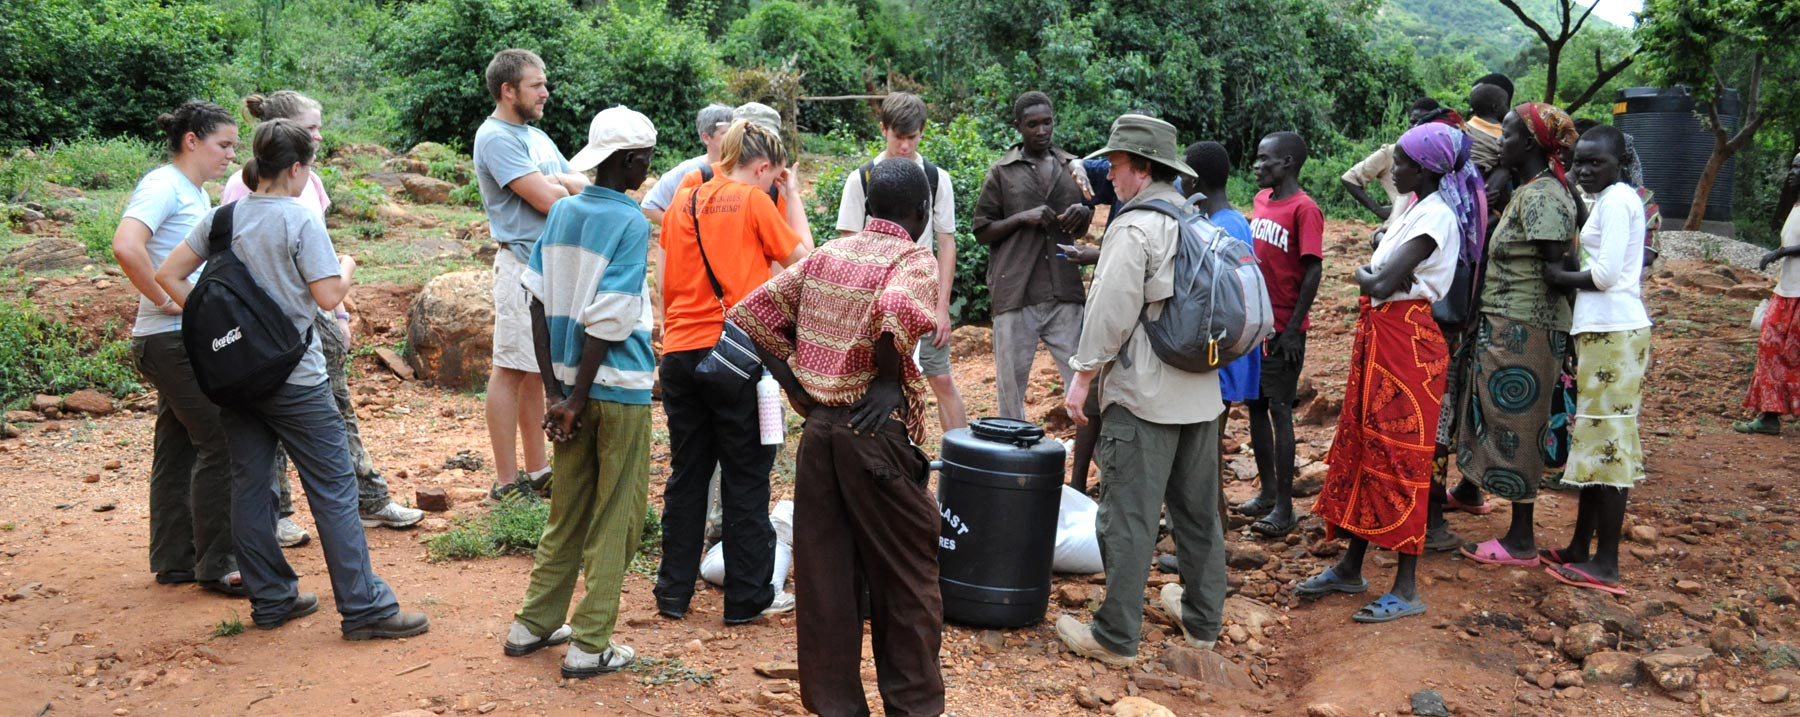 Mercer On Mission team members work on a system to provide clean drinking water from the Wei Wei River to the center of the Kenyan community.